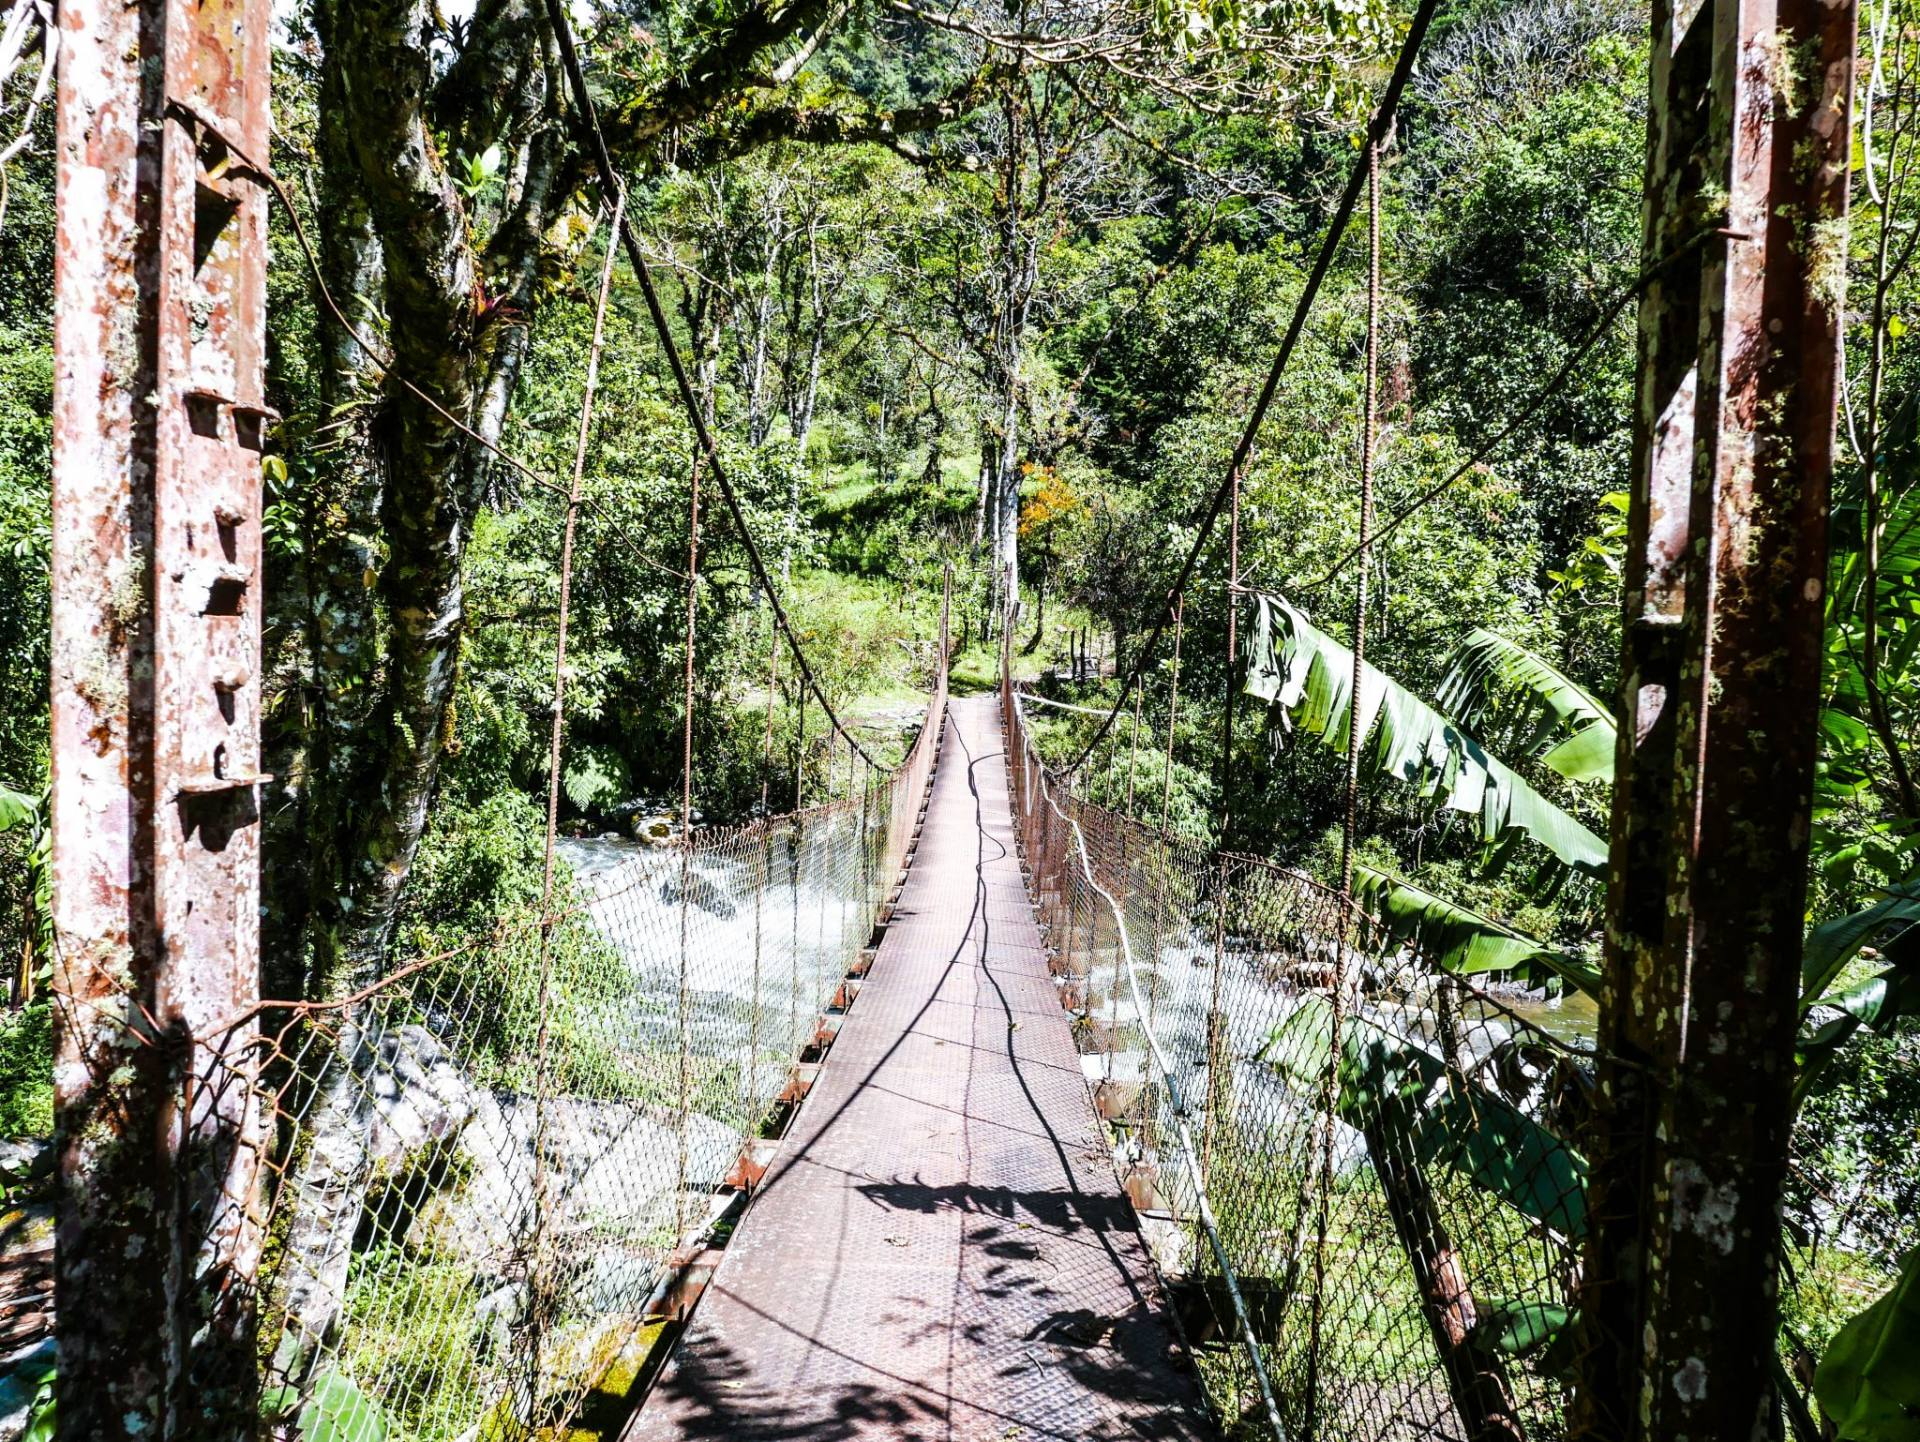 Hiking the Lost Waterfalls trail in Boquete, Panama is an absolutely more. Read this post to find out all about Boquete's best hike!